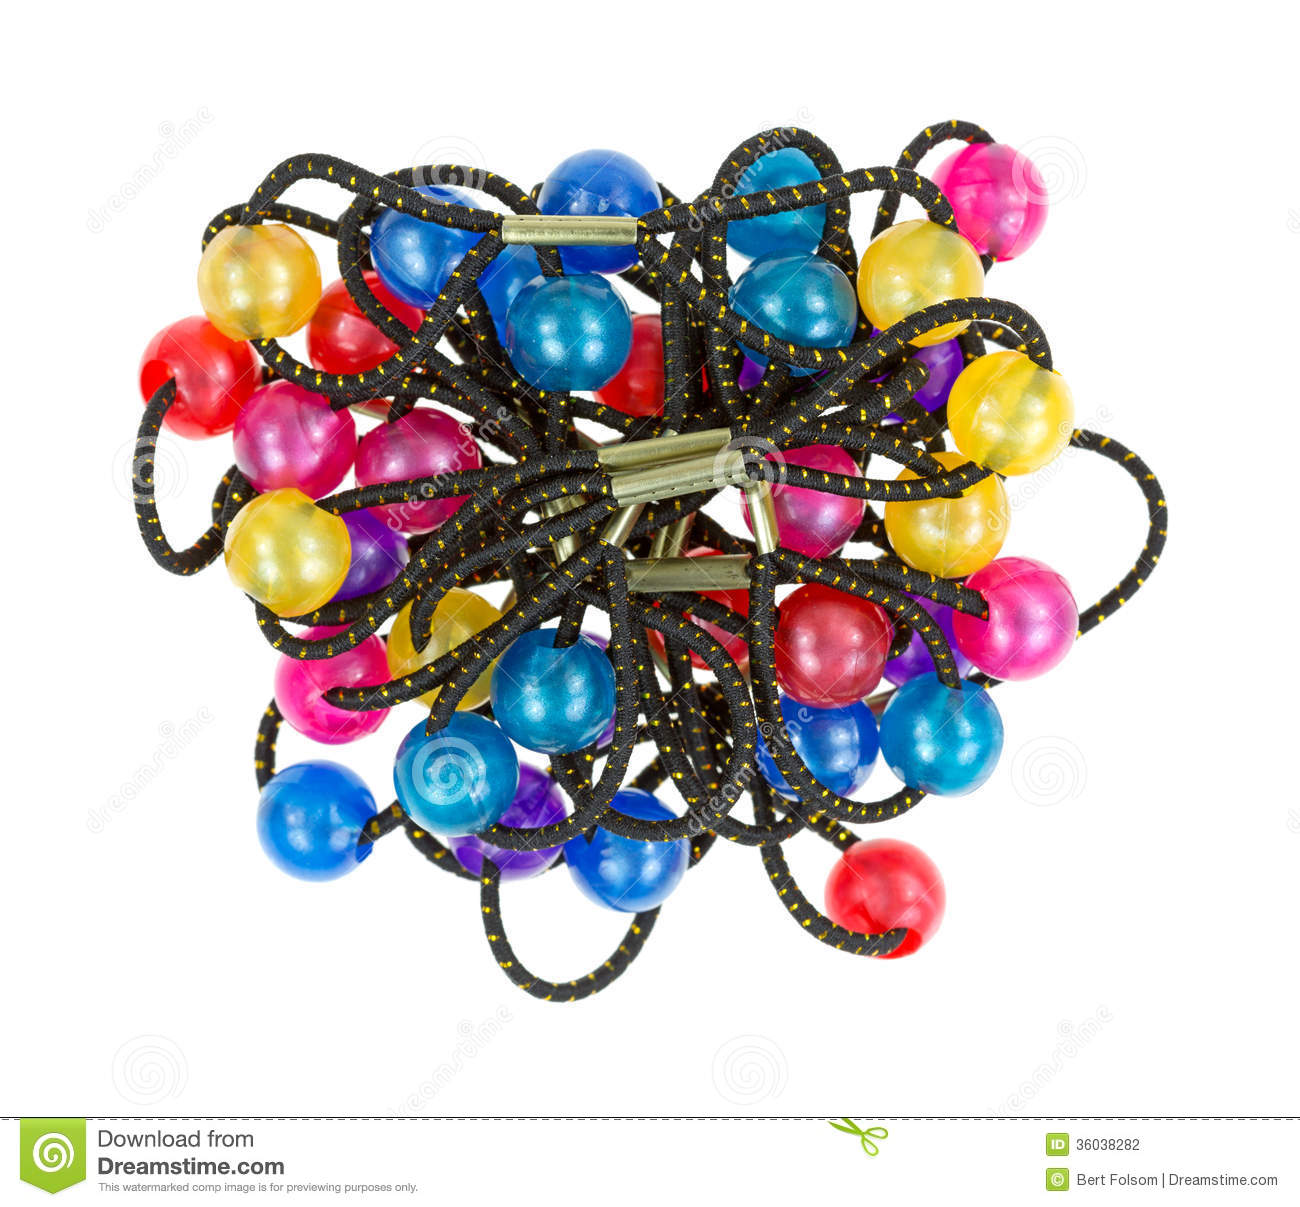 Jumble of ponytail holders stock photo. Image of blue - 36038282 b829bad3ee0